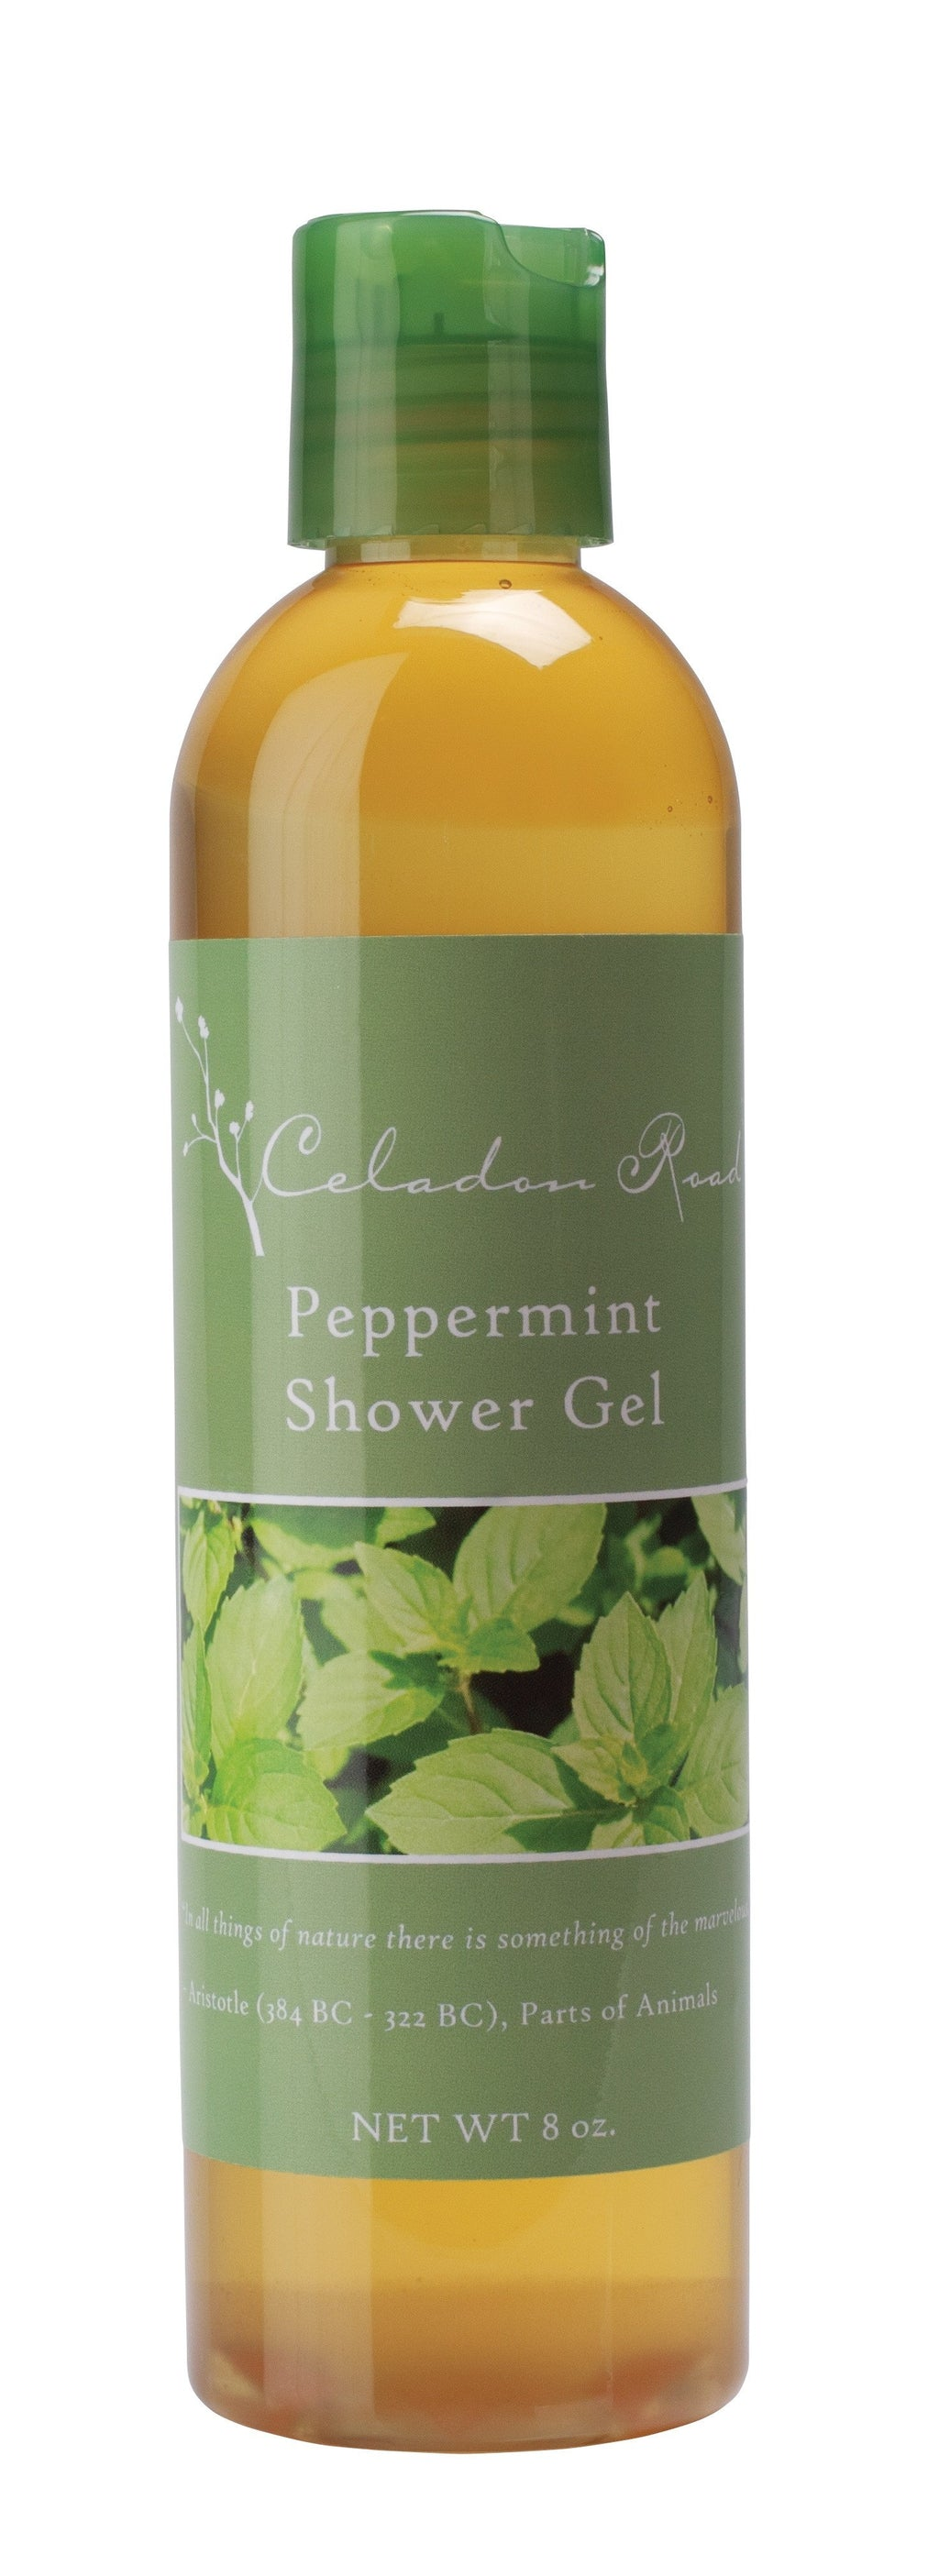 Peppermint Shower Gel- Celadon Road- www.celadonroad.com